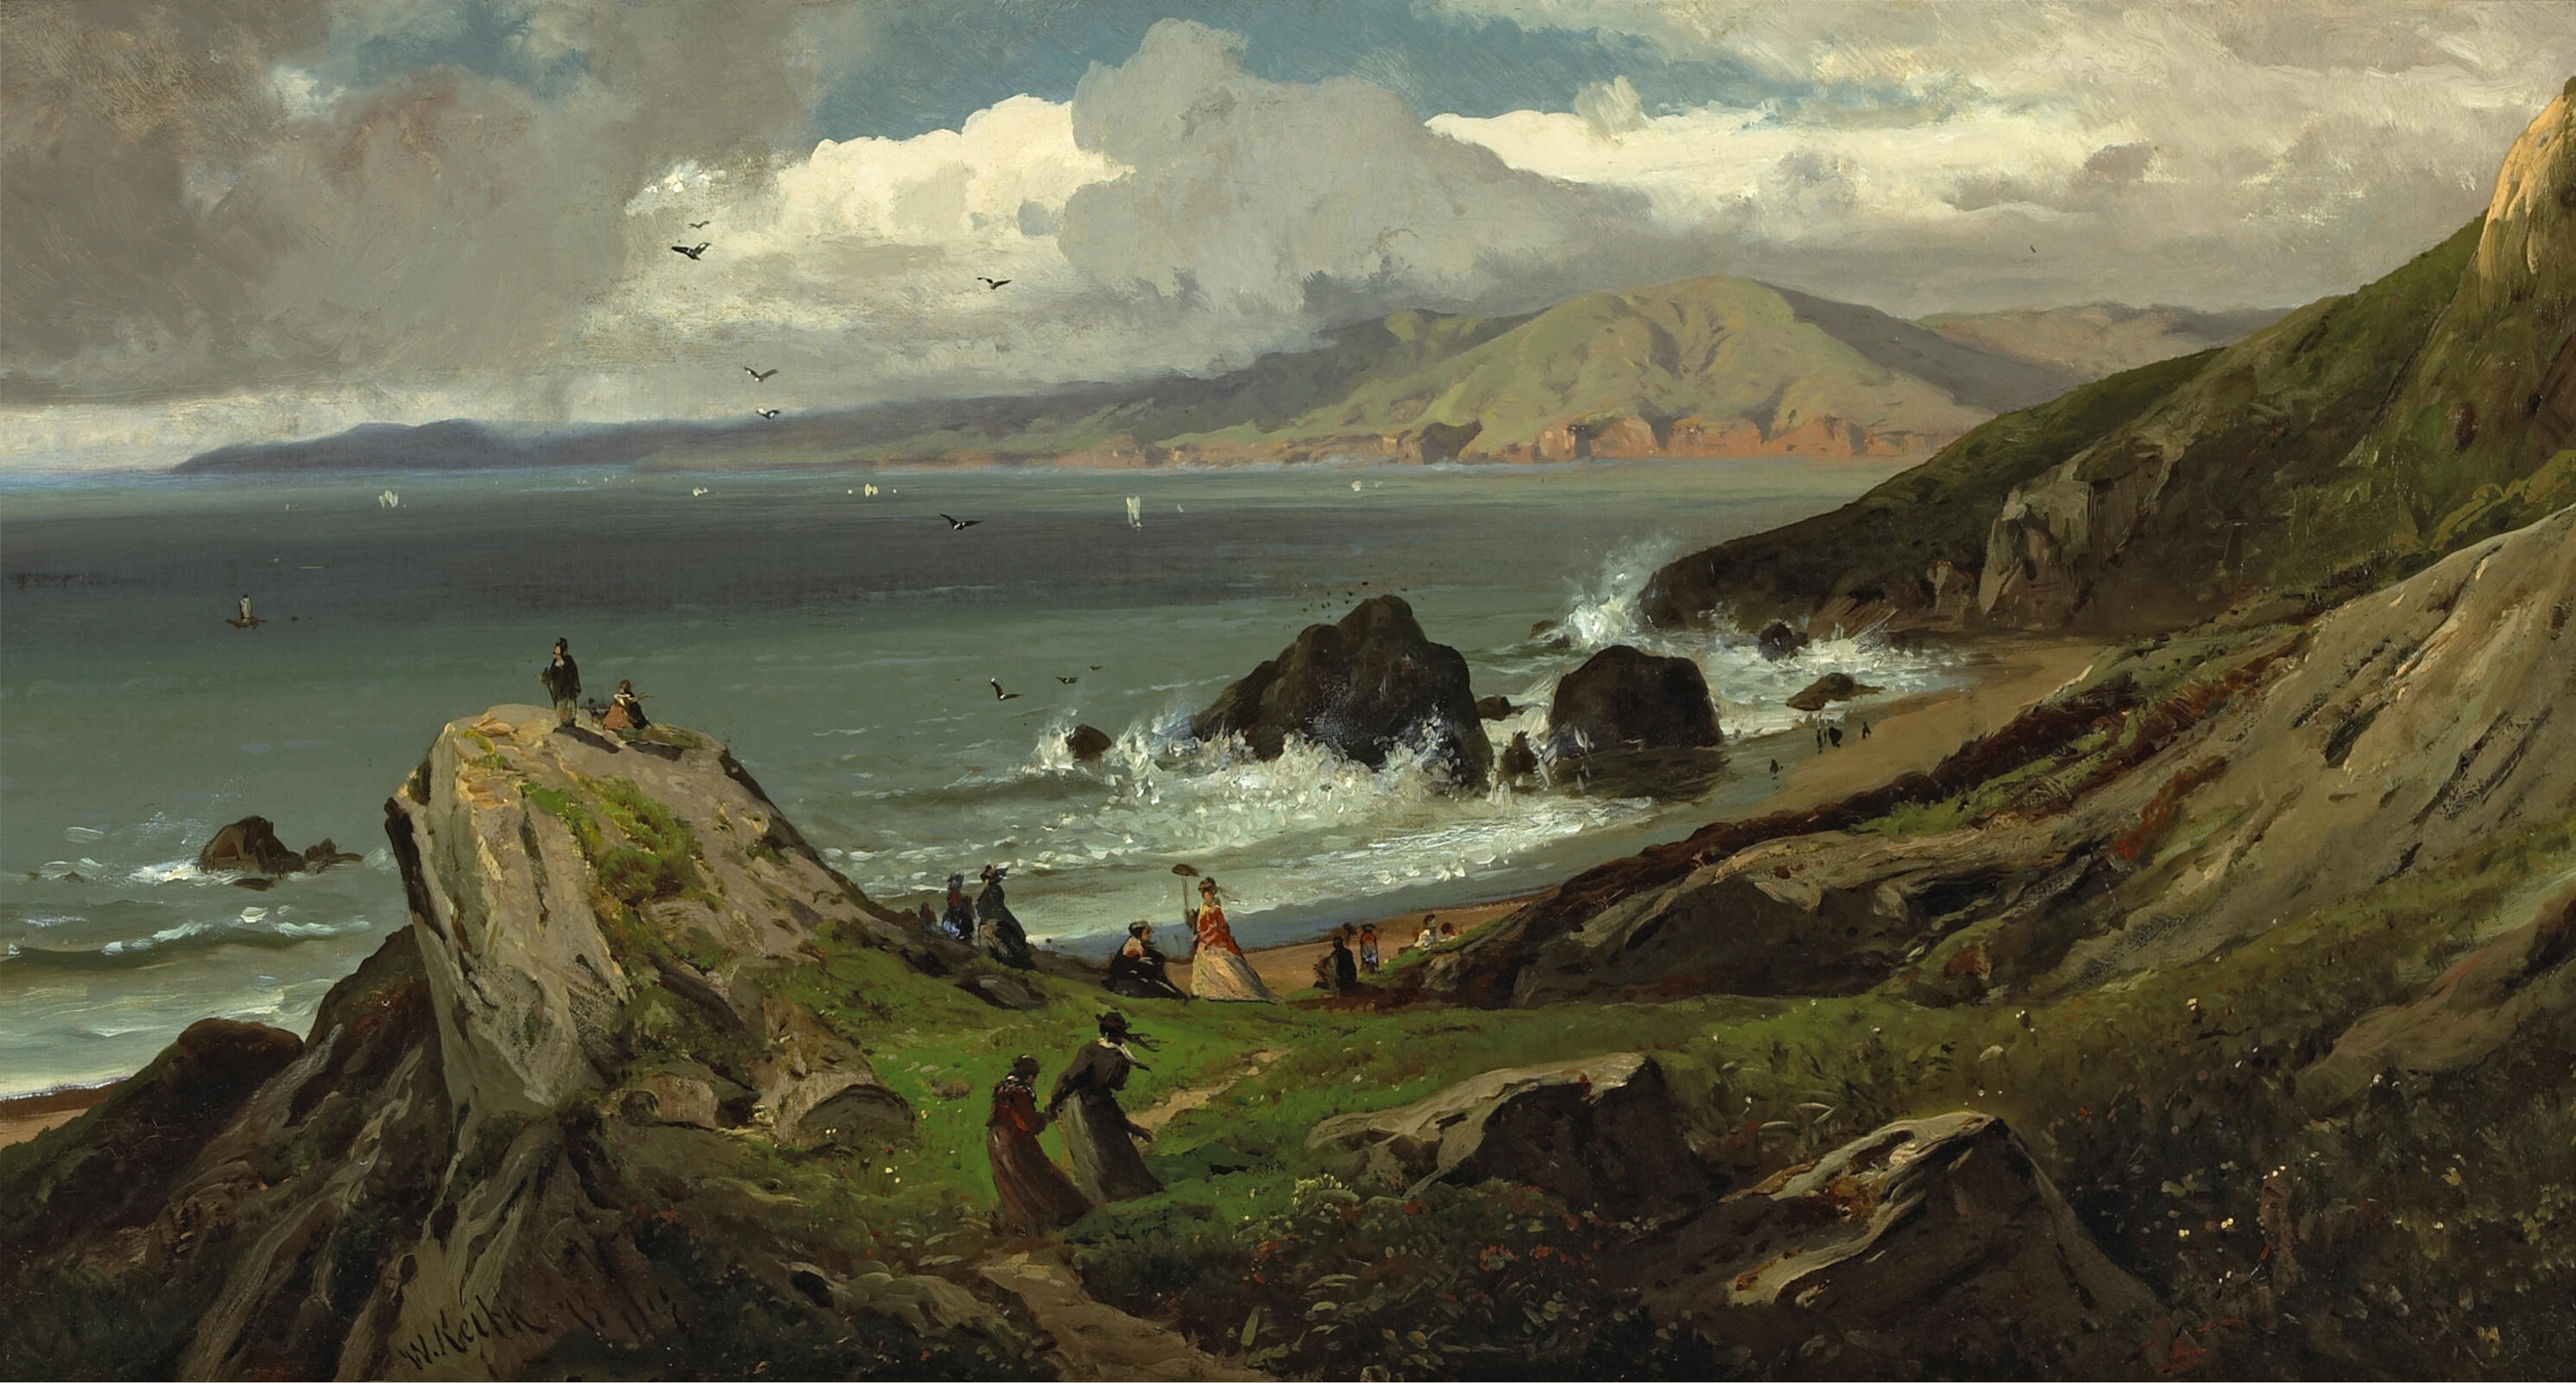 California landscape in art: William Keith, Land's End, ca. 1873, private collection